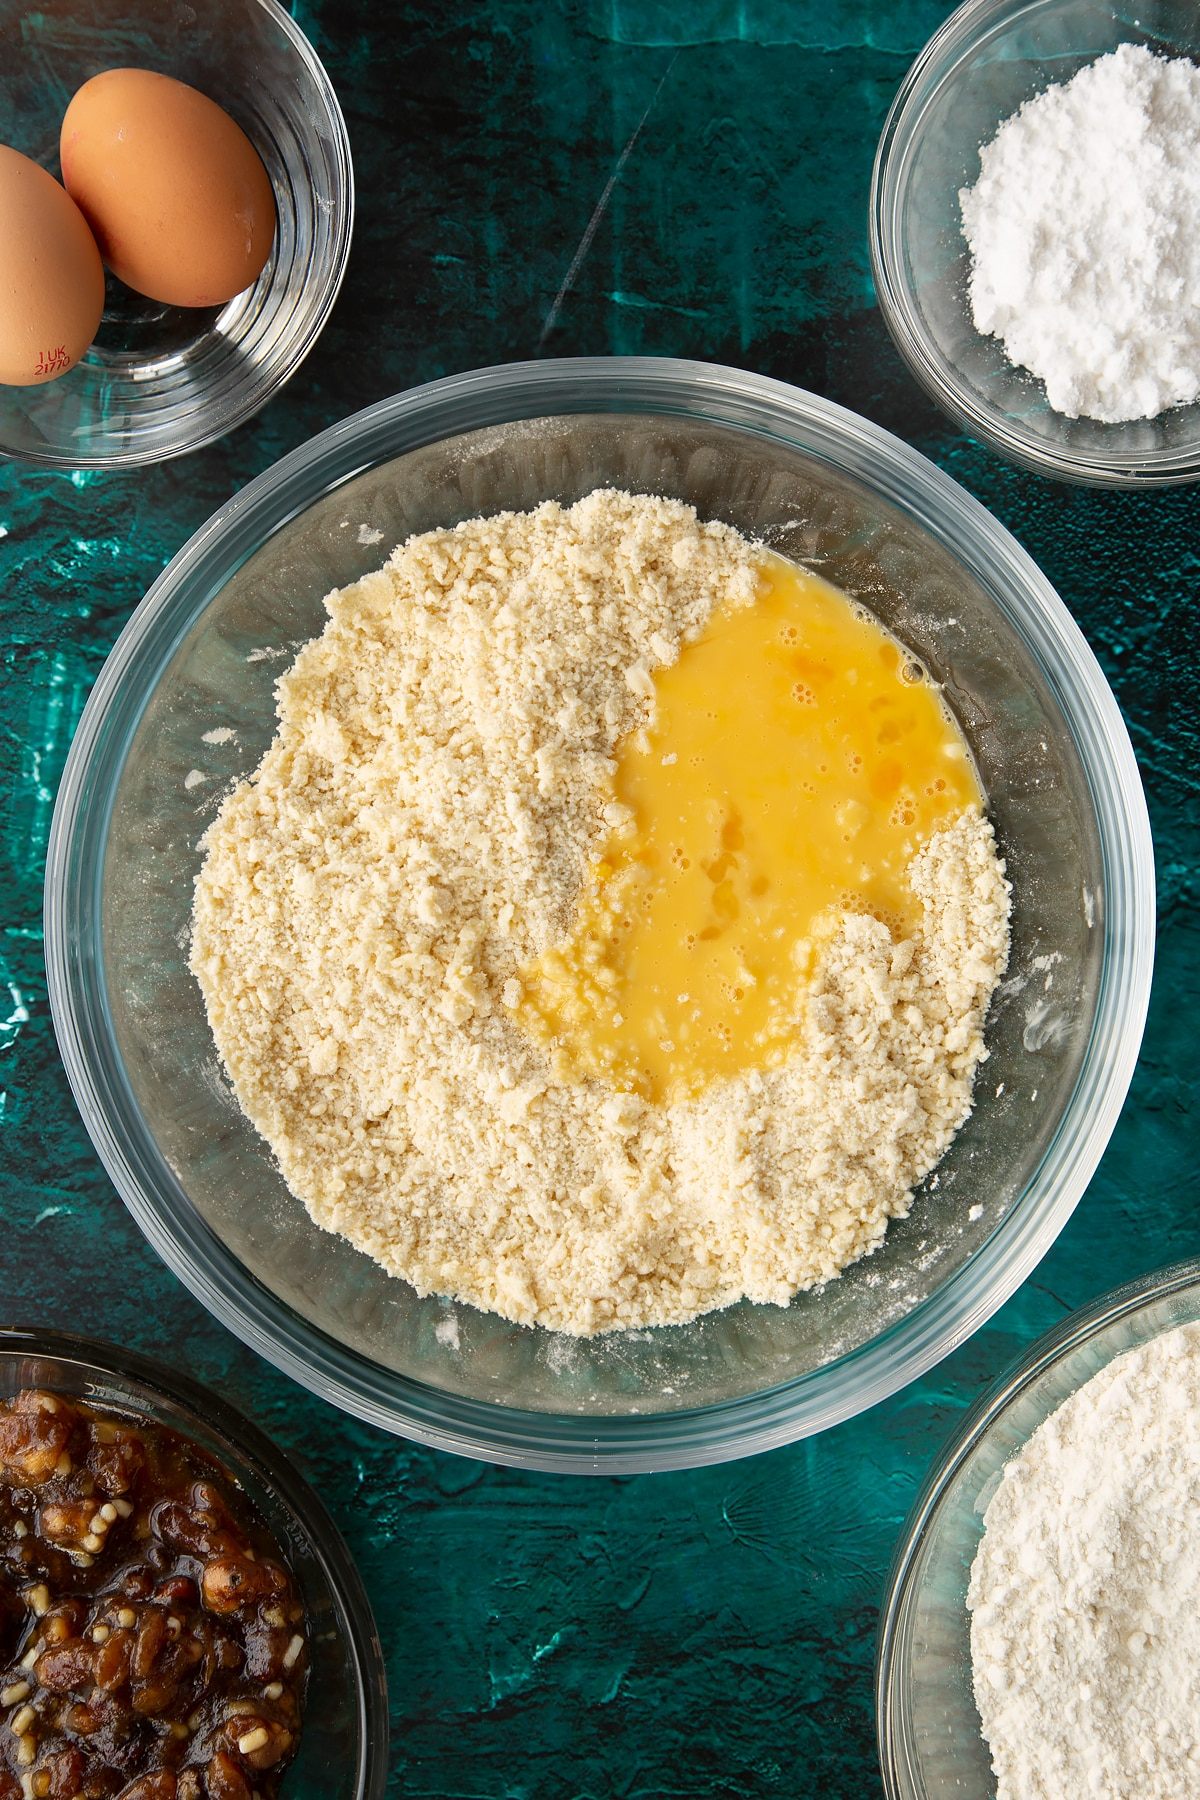 Flour, sugar and butter rubbed together in a mixing bowl with beaten egg on top. Ingredients to make mini mince pies surround the bowl.